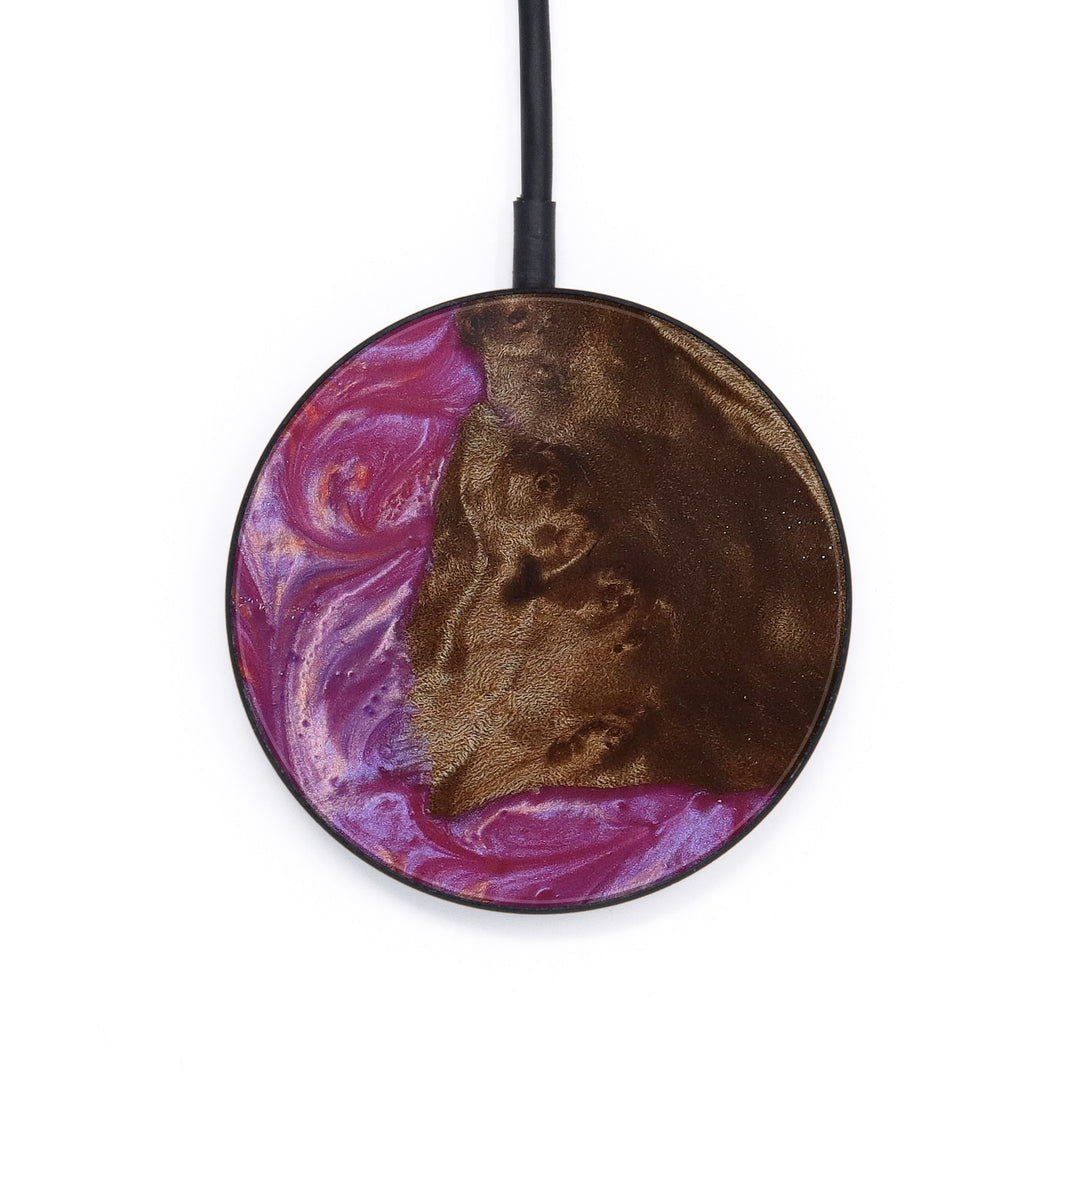 Circle Wood+Resin Wireless Charger - Melisande (Pink, 386833)